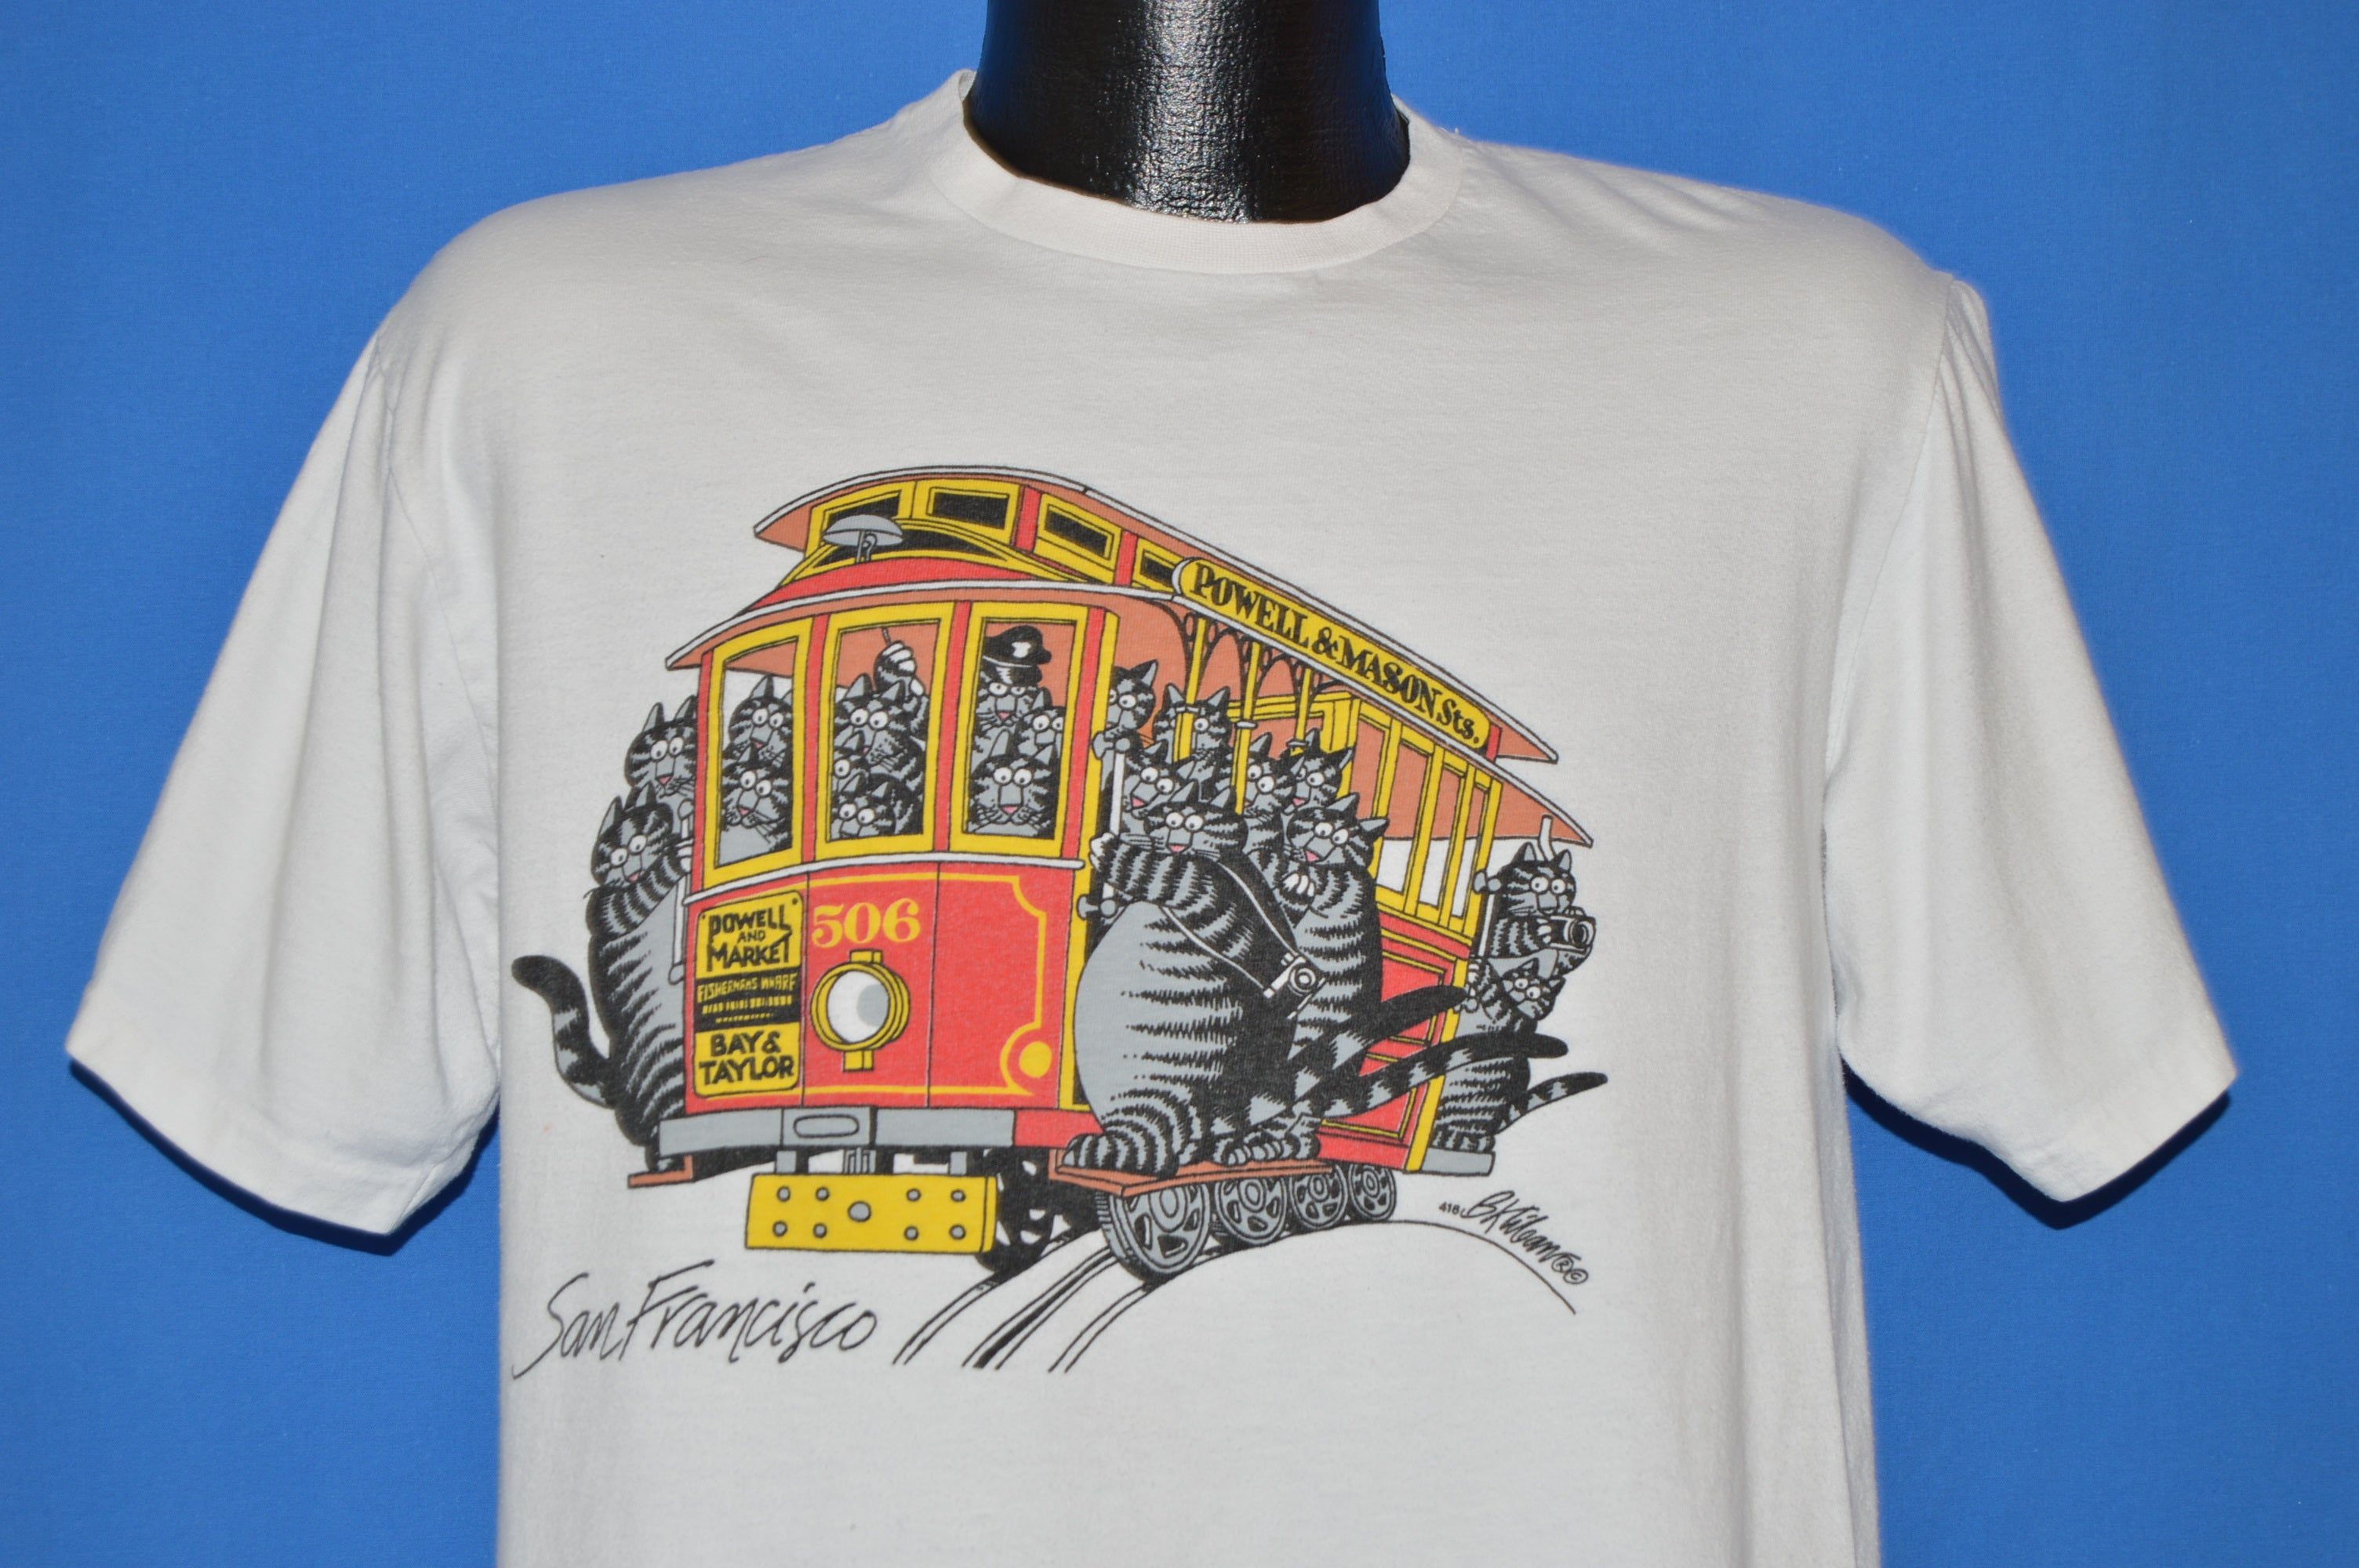 a63863c88 T-shirt Tuesday - B Kliban and His Fat Cats - The Captains Vintage